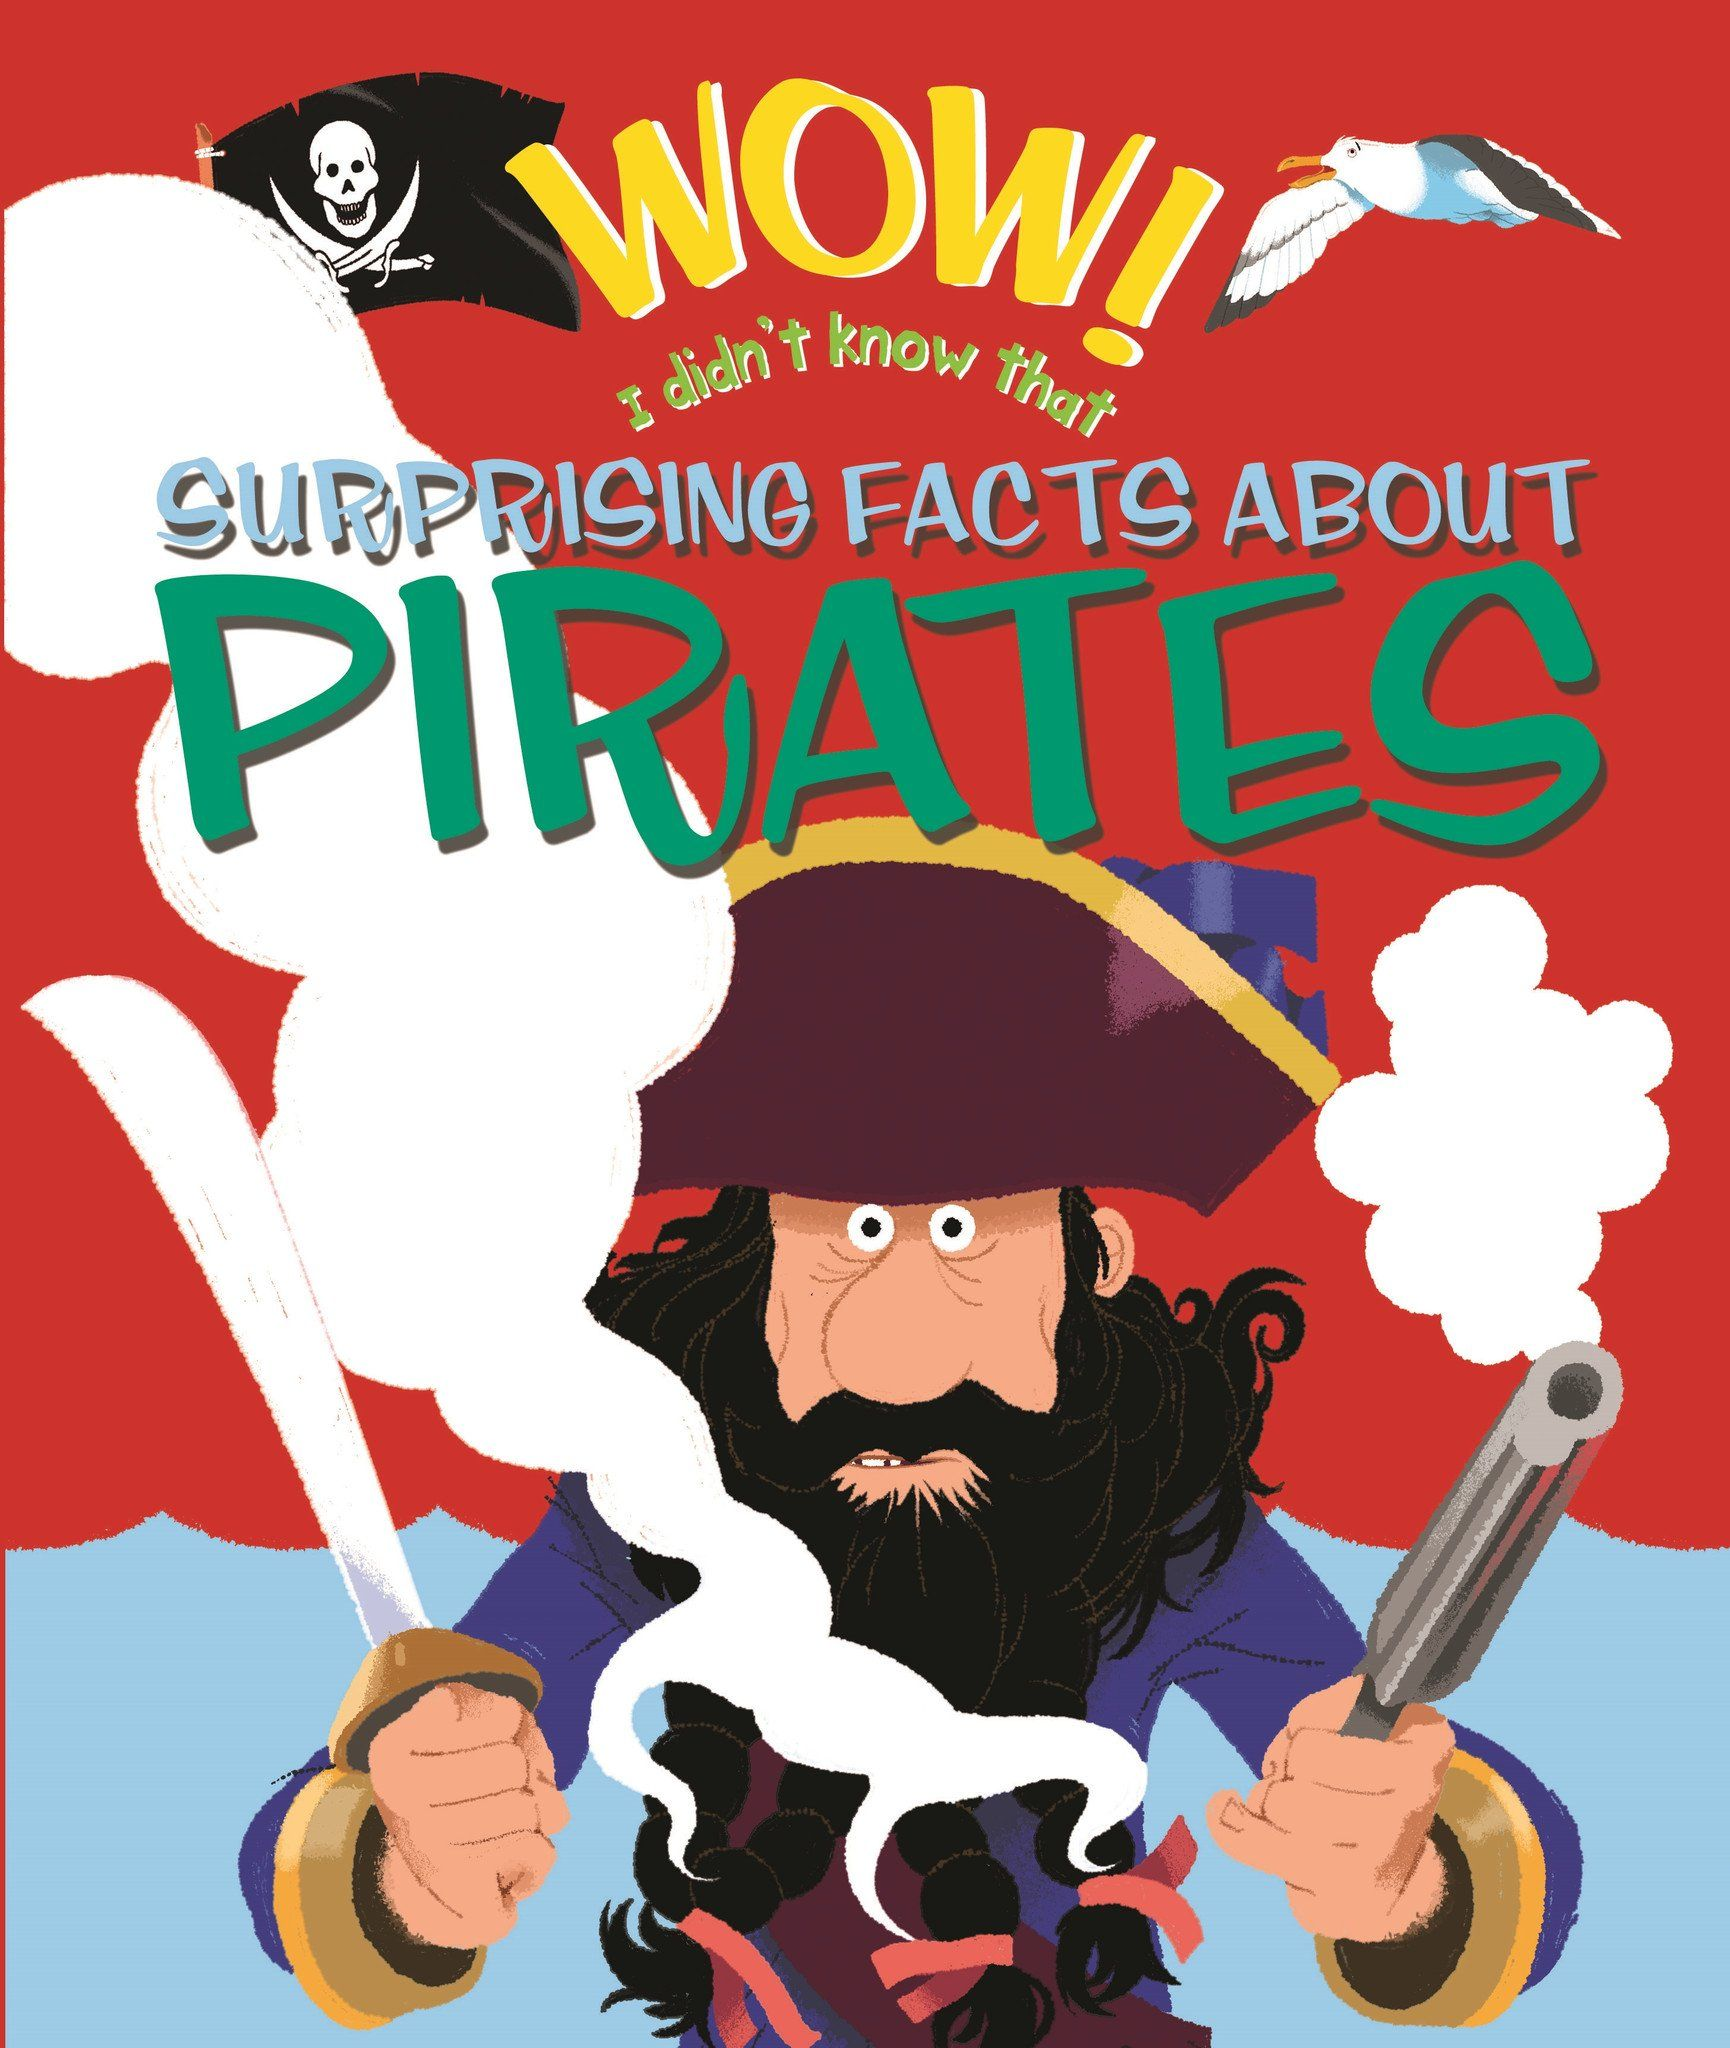 Surprising Facts About Pirates, by Marc Aspinall in 2020